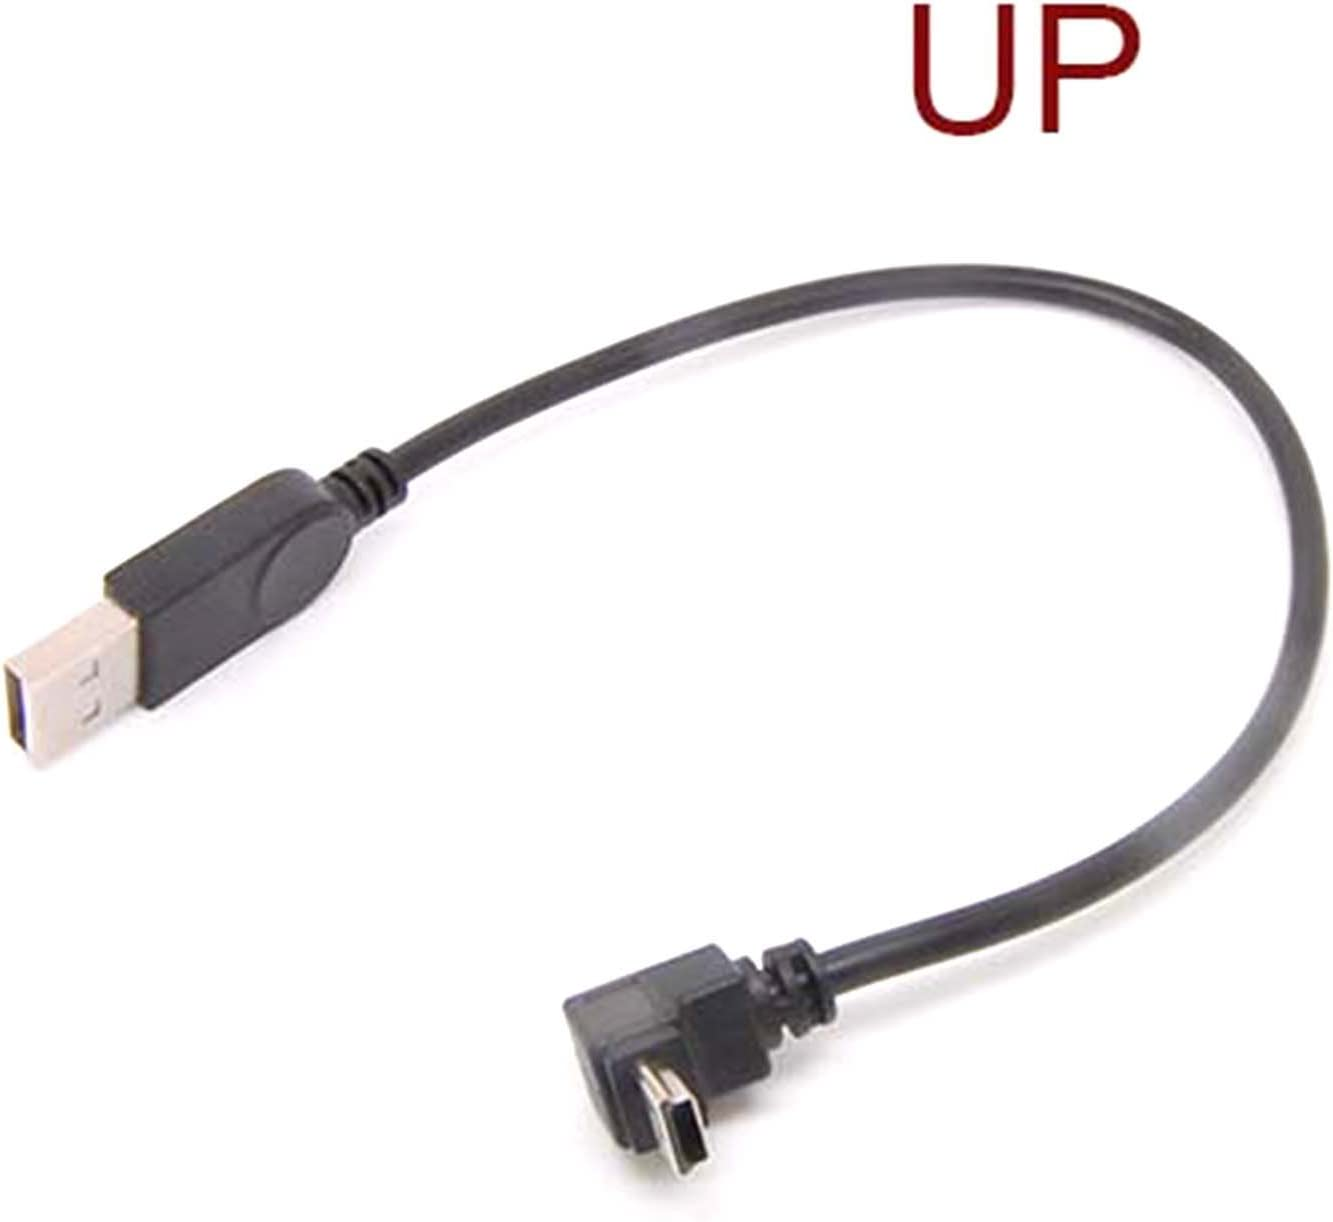 90 Degree 5pin Mini Usb Cable Usb A Male To Right Angle Mini B Male For Mp3 Mp4 Cell Phone Camera Gps Data Charger Cord Up Angle Amazon Ca Cell Phones Accessories